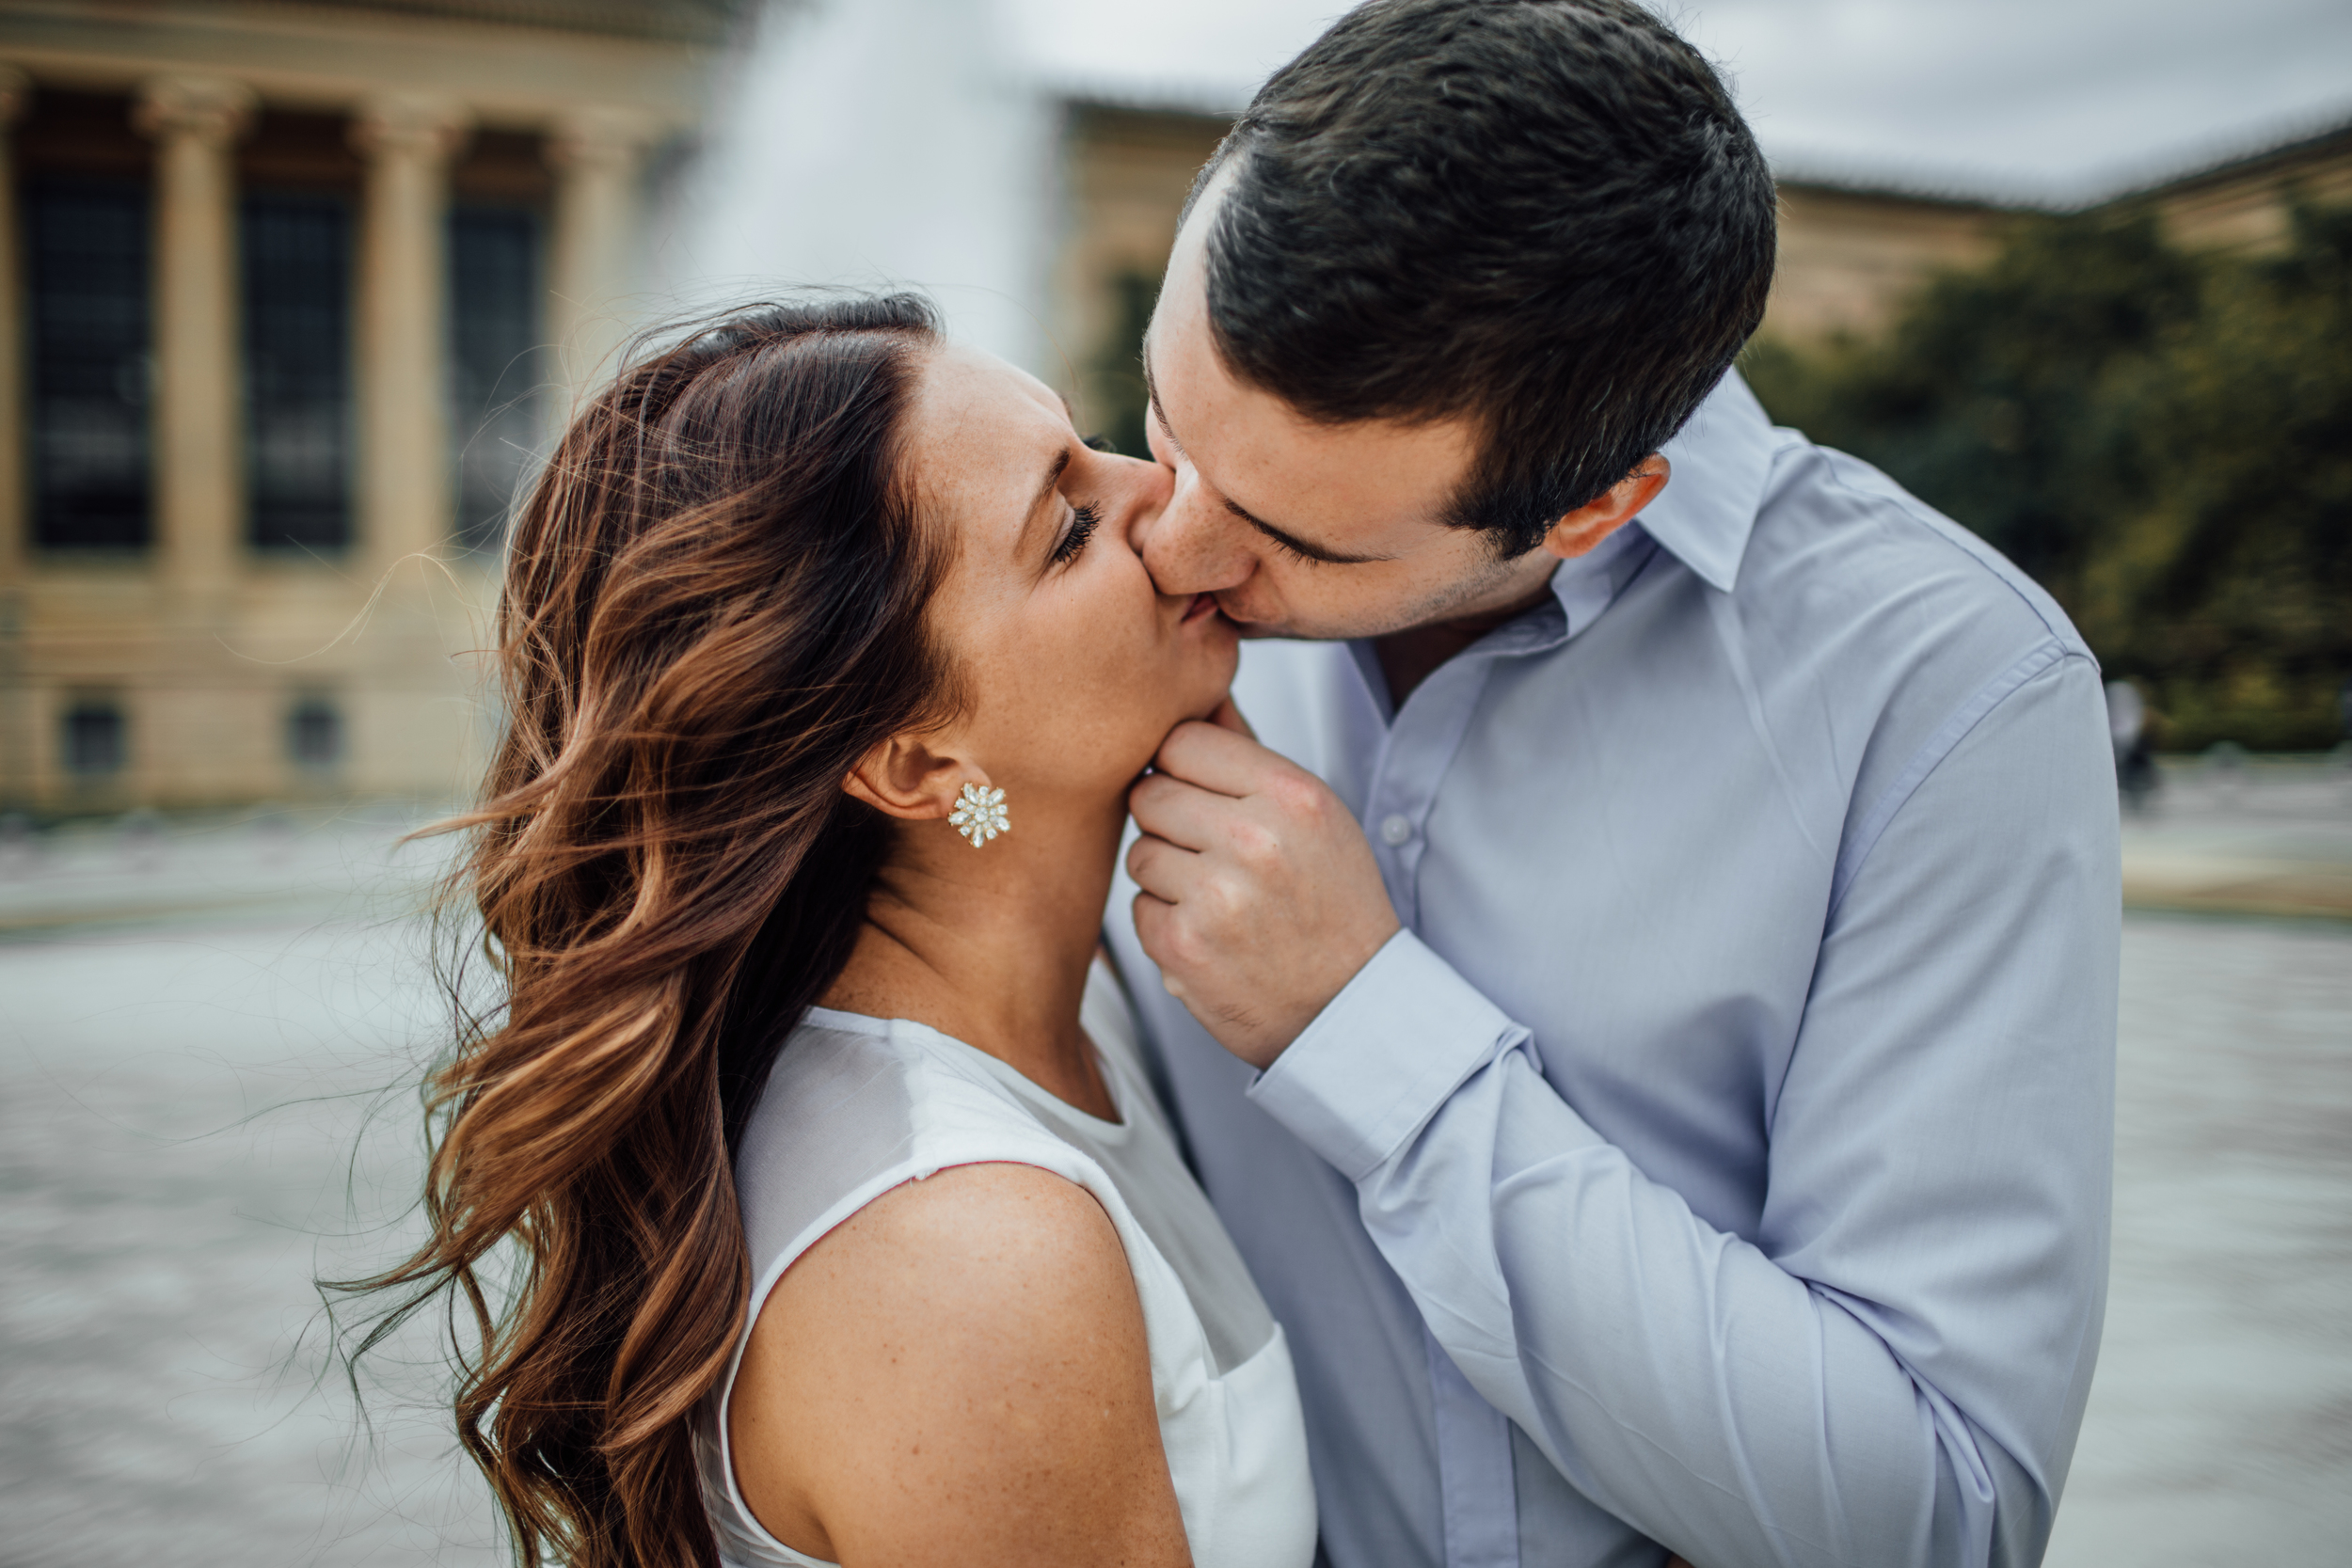 BRITTANYandKEVIN-Engagement2015 (87 of 115).jpg